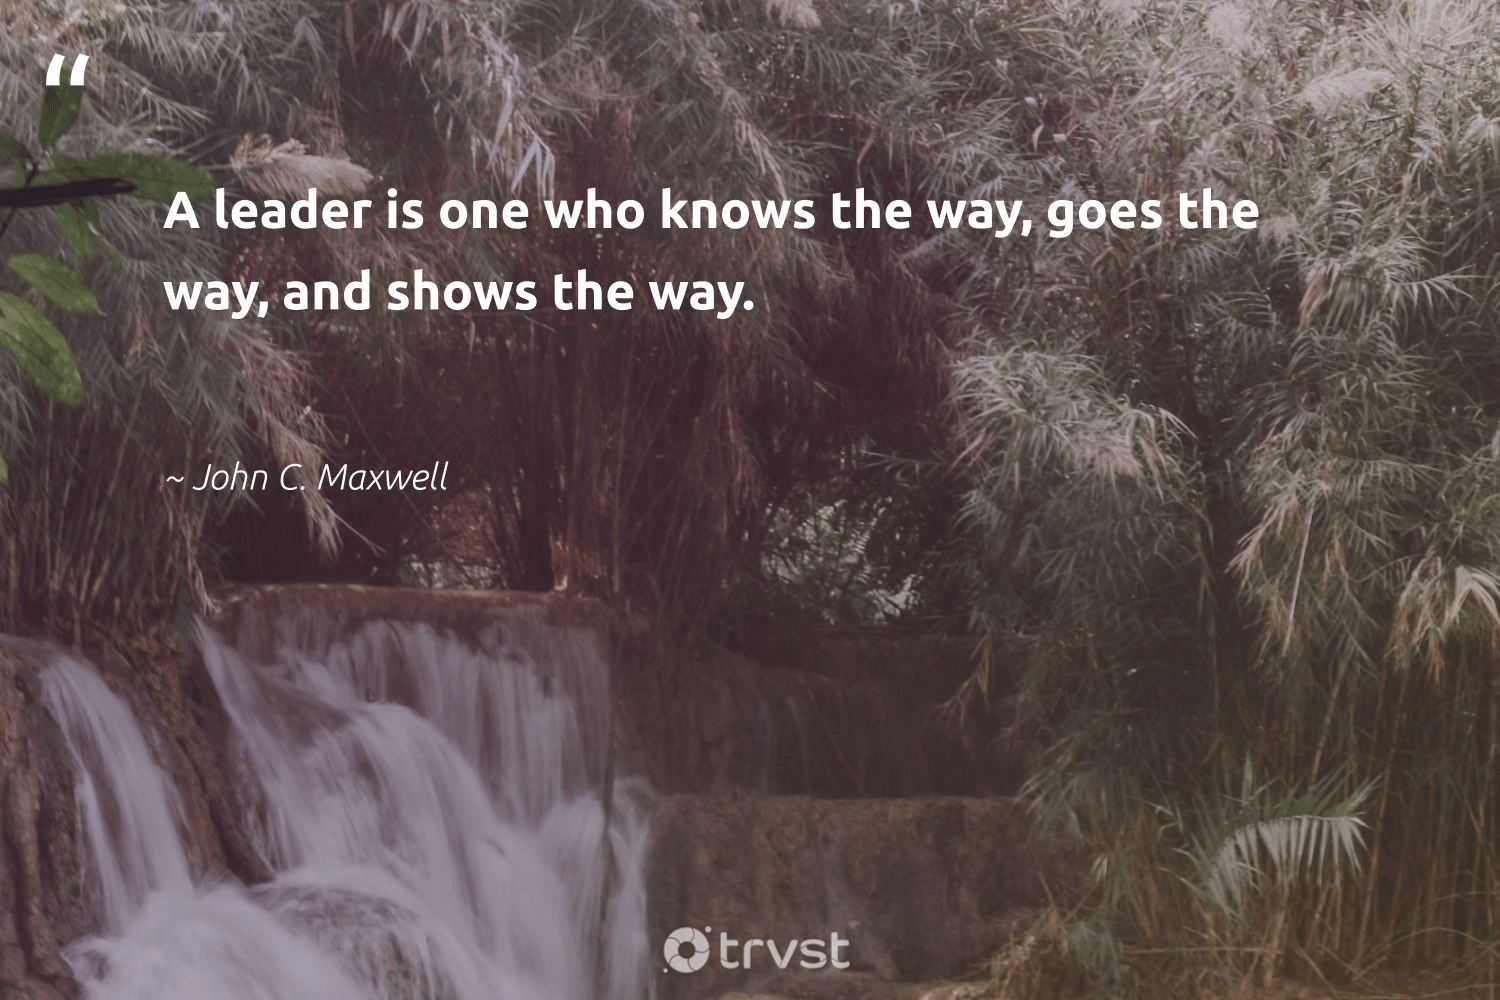 """A leader is one who knows the way, goes the way, and shows the way.""  - John C. Maxwell #trvst #quotes #nevergiveup #dotherightthing #begreat #changetheworld #softskills #beinspired #futureofwork #gogreen #ecoconscious #bethechange"